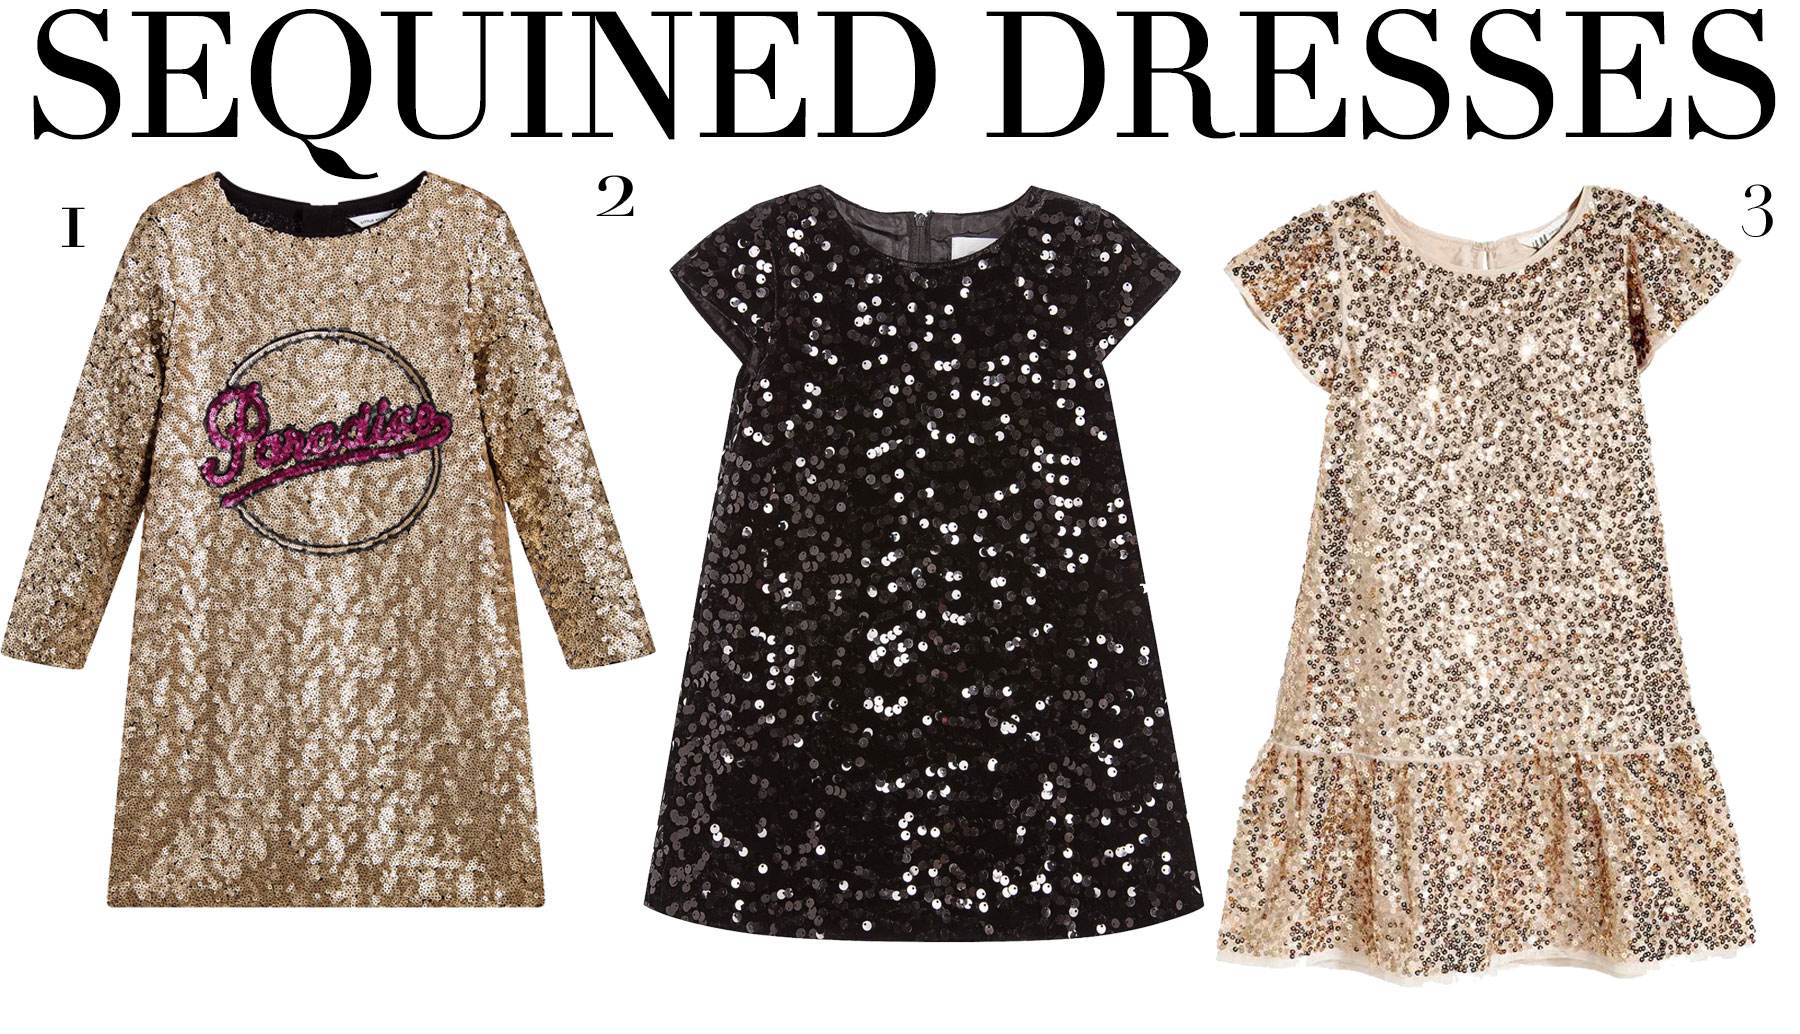 Party-Proof-Outfits-NYE-Sanne-van-Gestel-The-Mom-sequinned-dresses